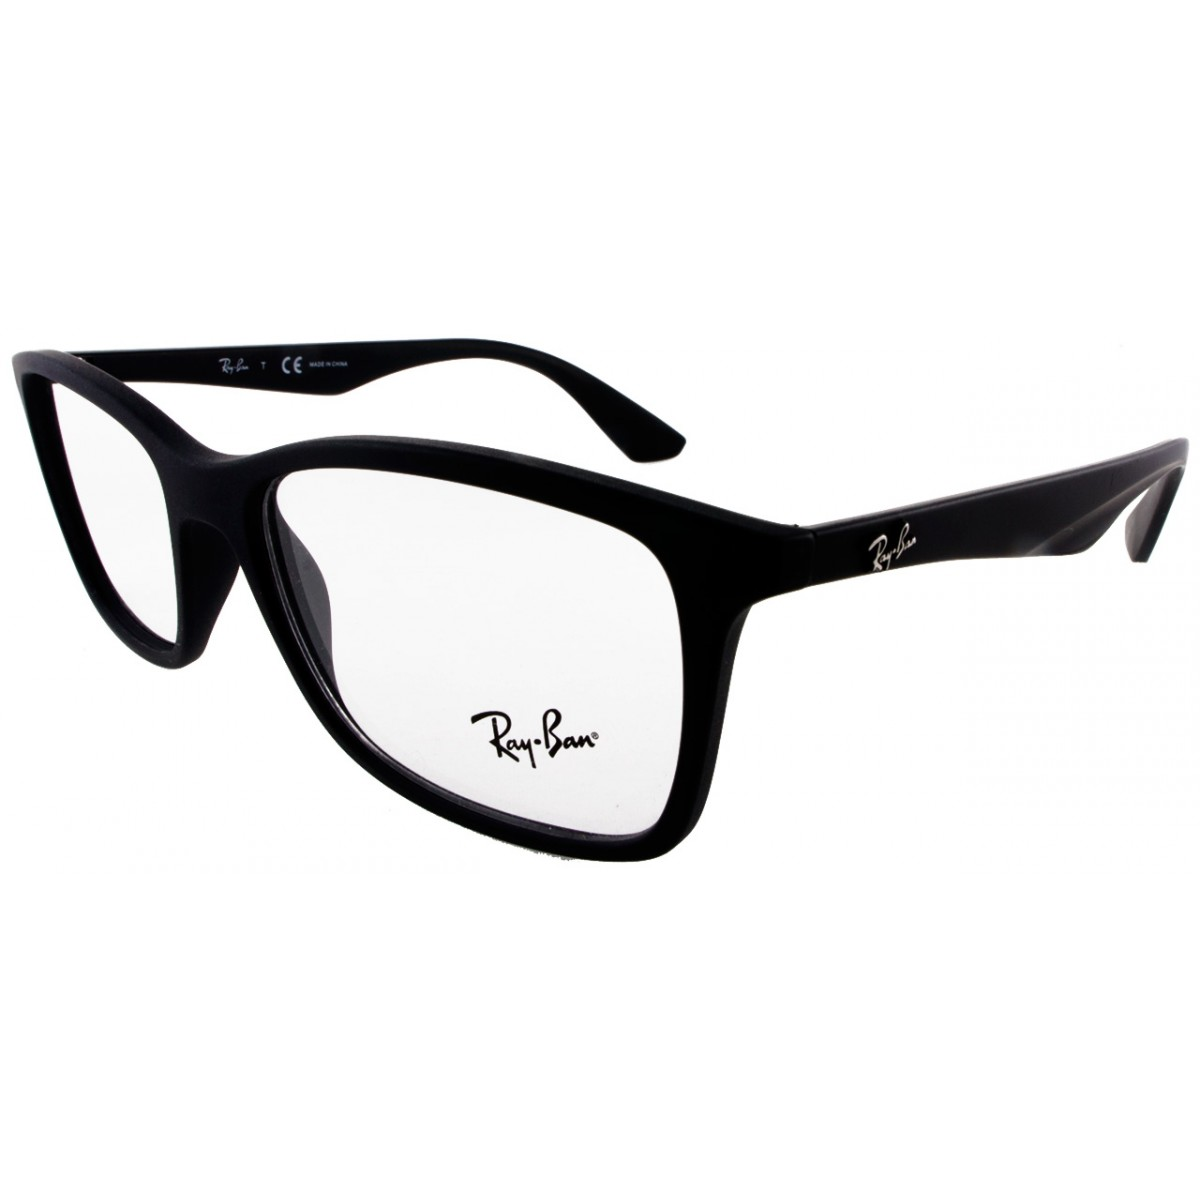 bb4655deed Online Eyeglasses with Customer Service Center in California Ray Ban ...